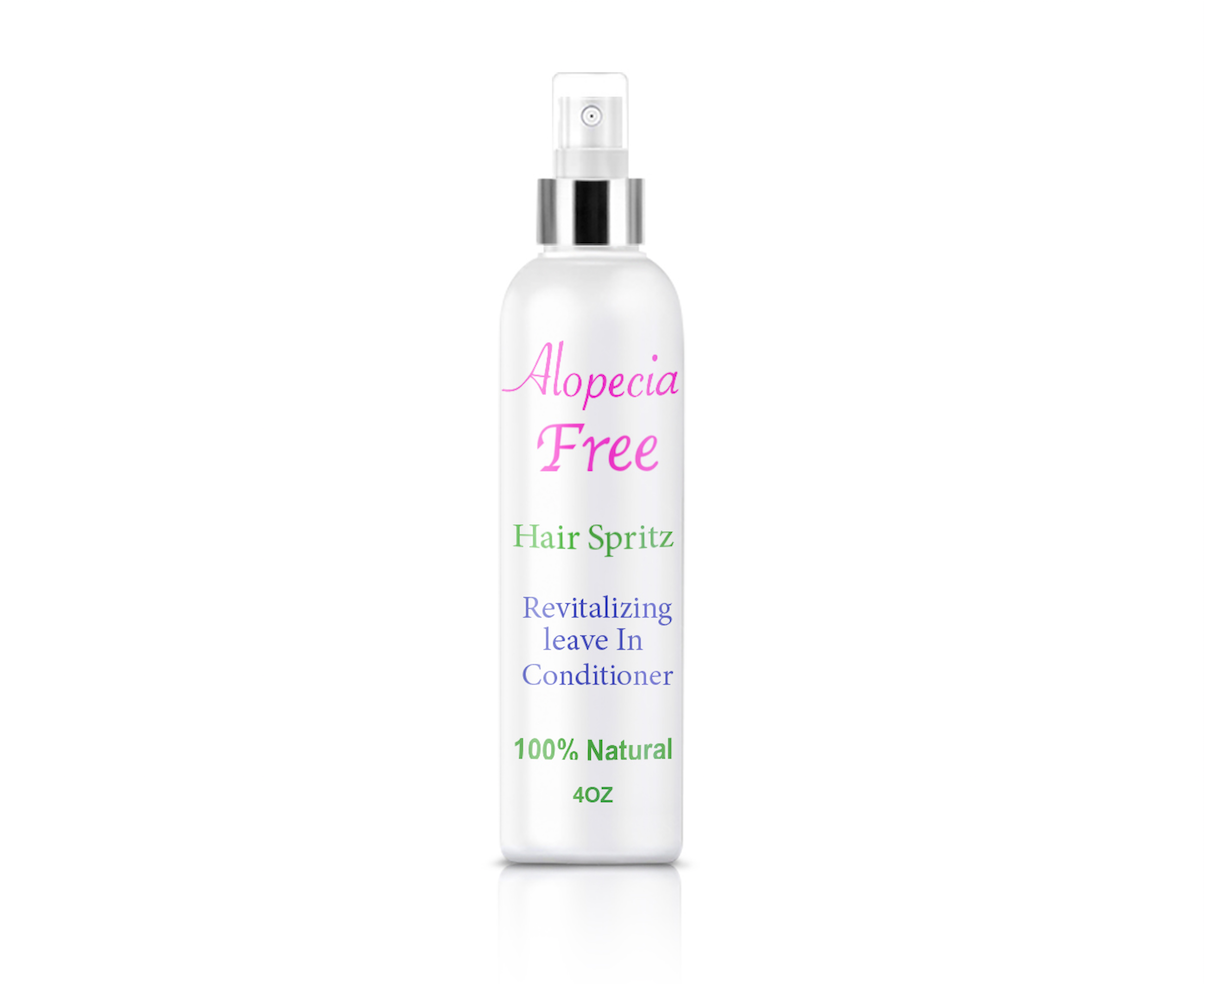 Hair Spritz Alopecia Free Shop